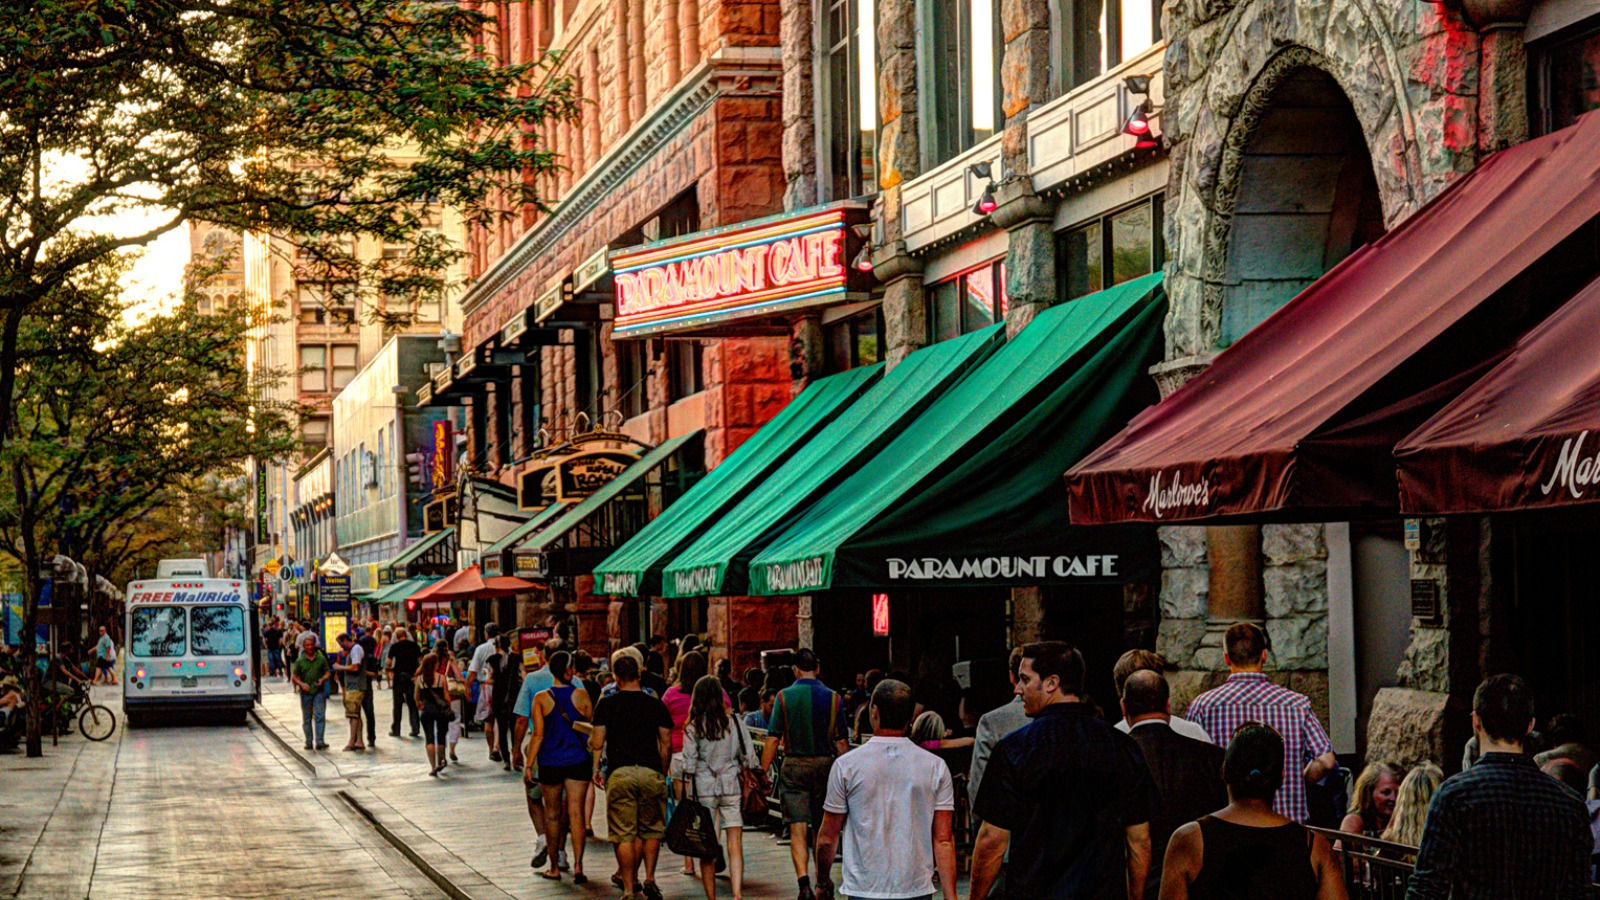 Downtown Denver Attractions - 16th Street Pedestrian Mall